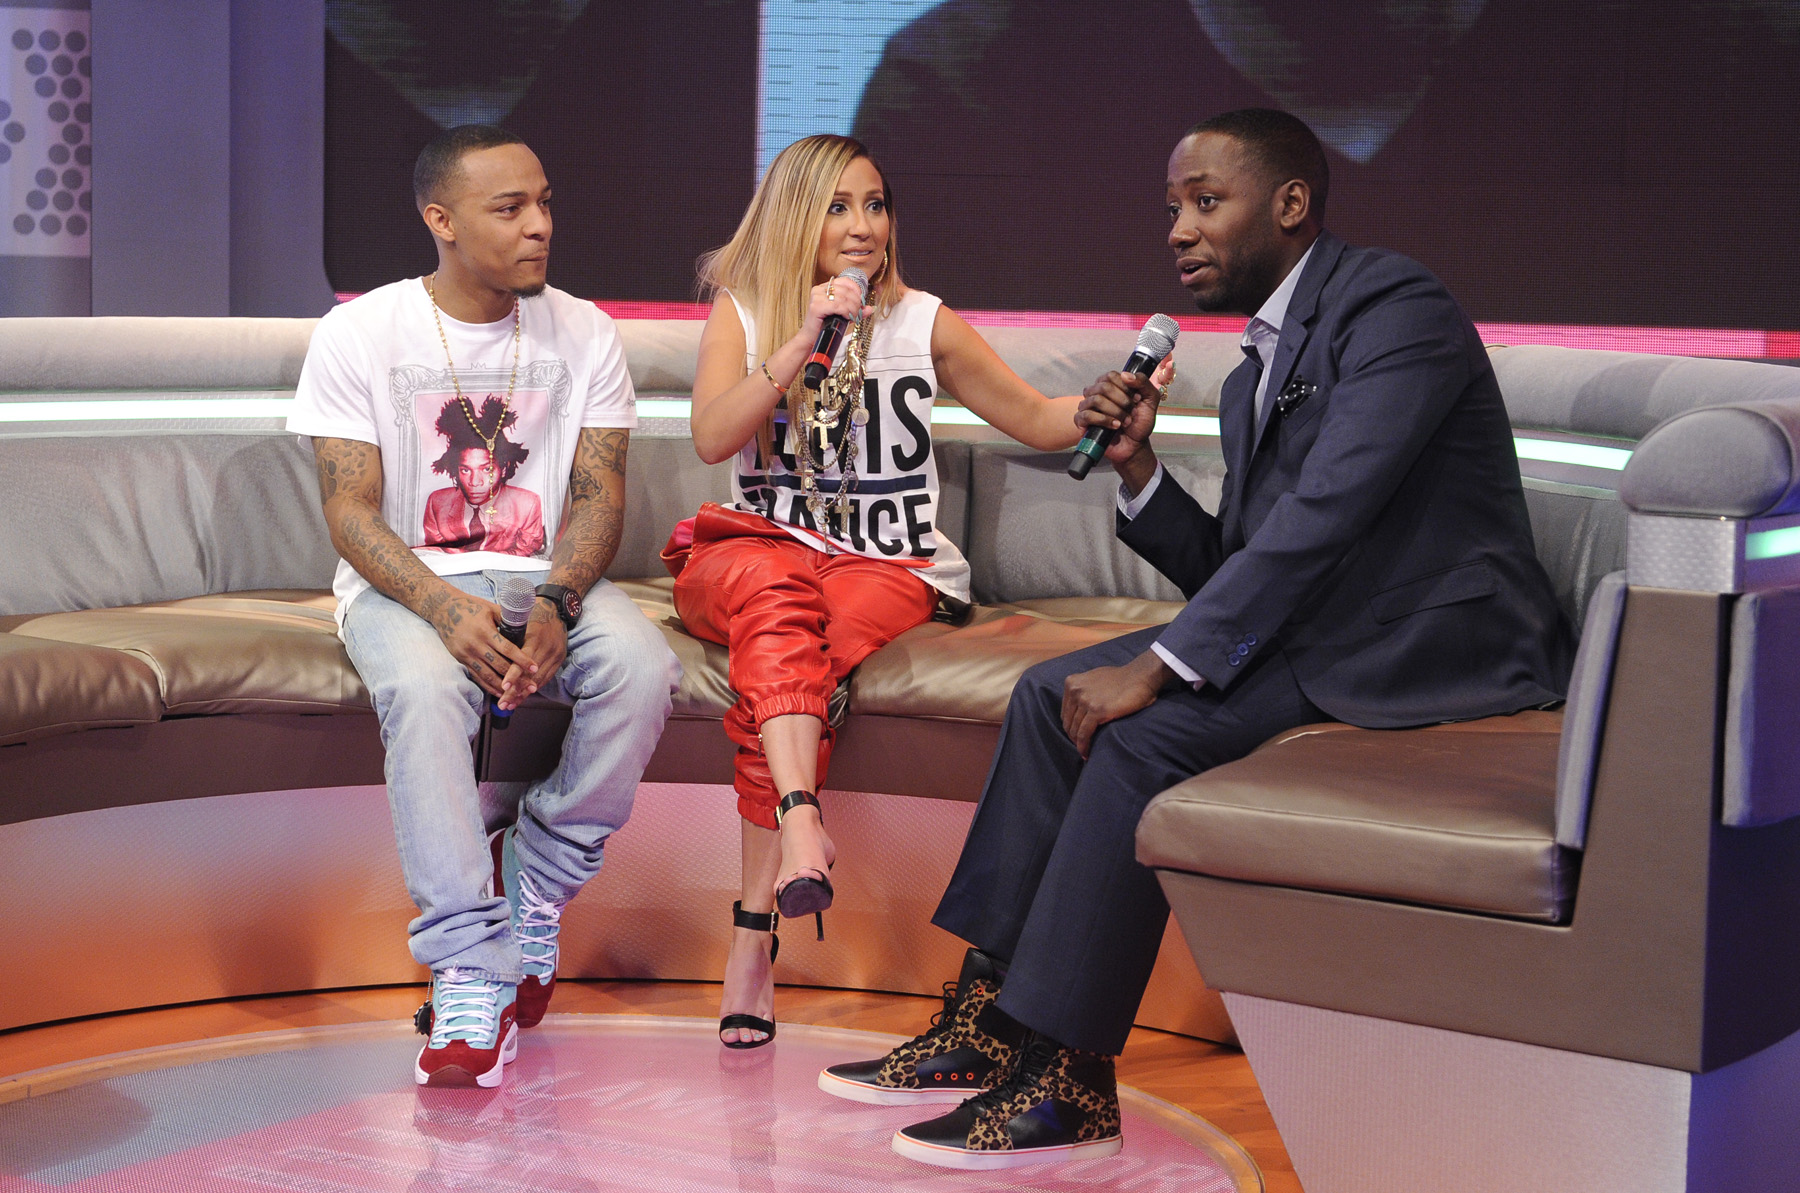 106 and park host dating In 2004, there were rumors that jay z had fathered a love child with free, the popular co-host of bet show 106 & park both sides vehemently denied a hookup earlier this year, rapper liv told radar online that jay z hit on her in 2008 when he was with beyonce nothing more happened than that, and jay.